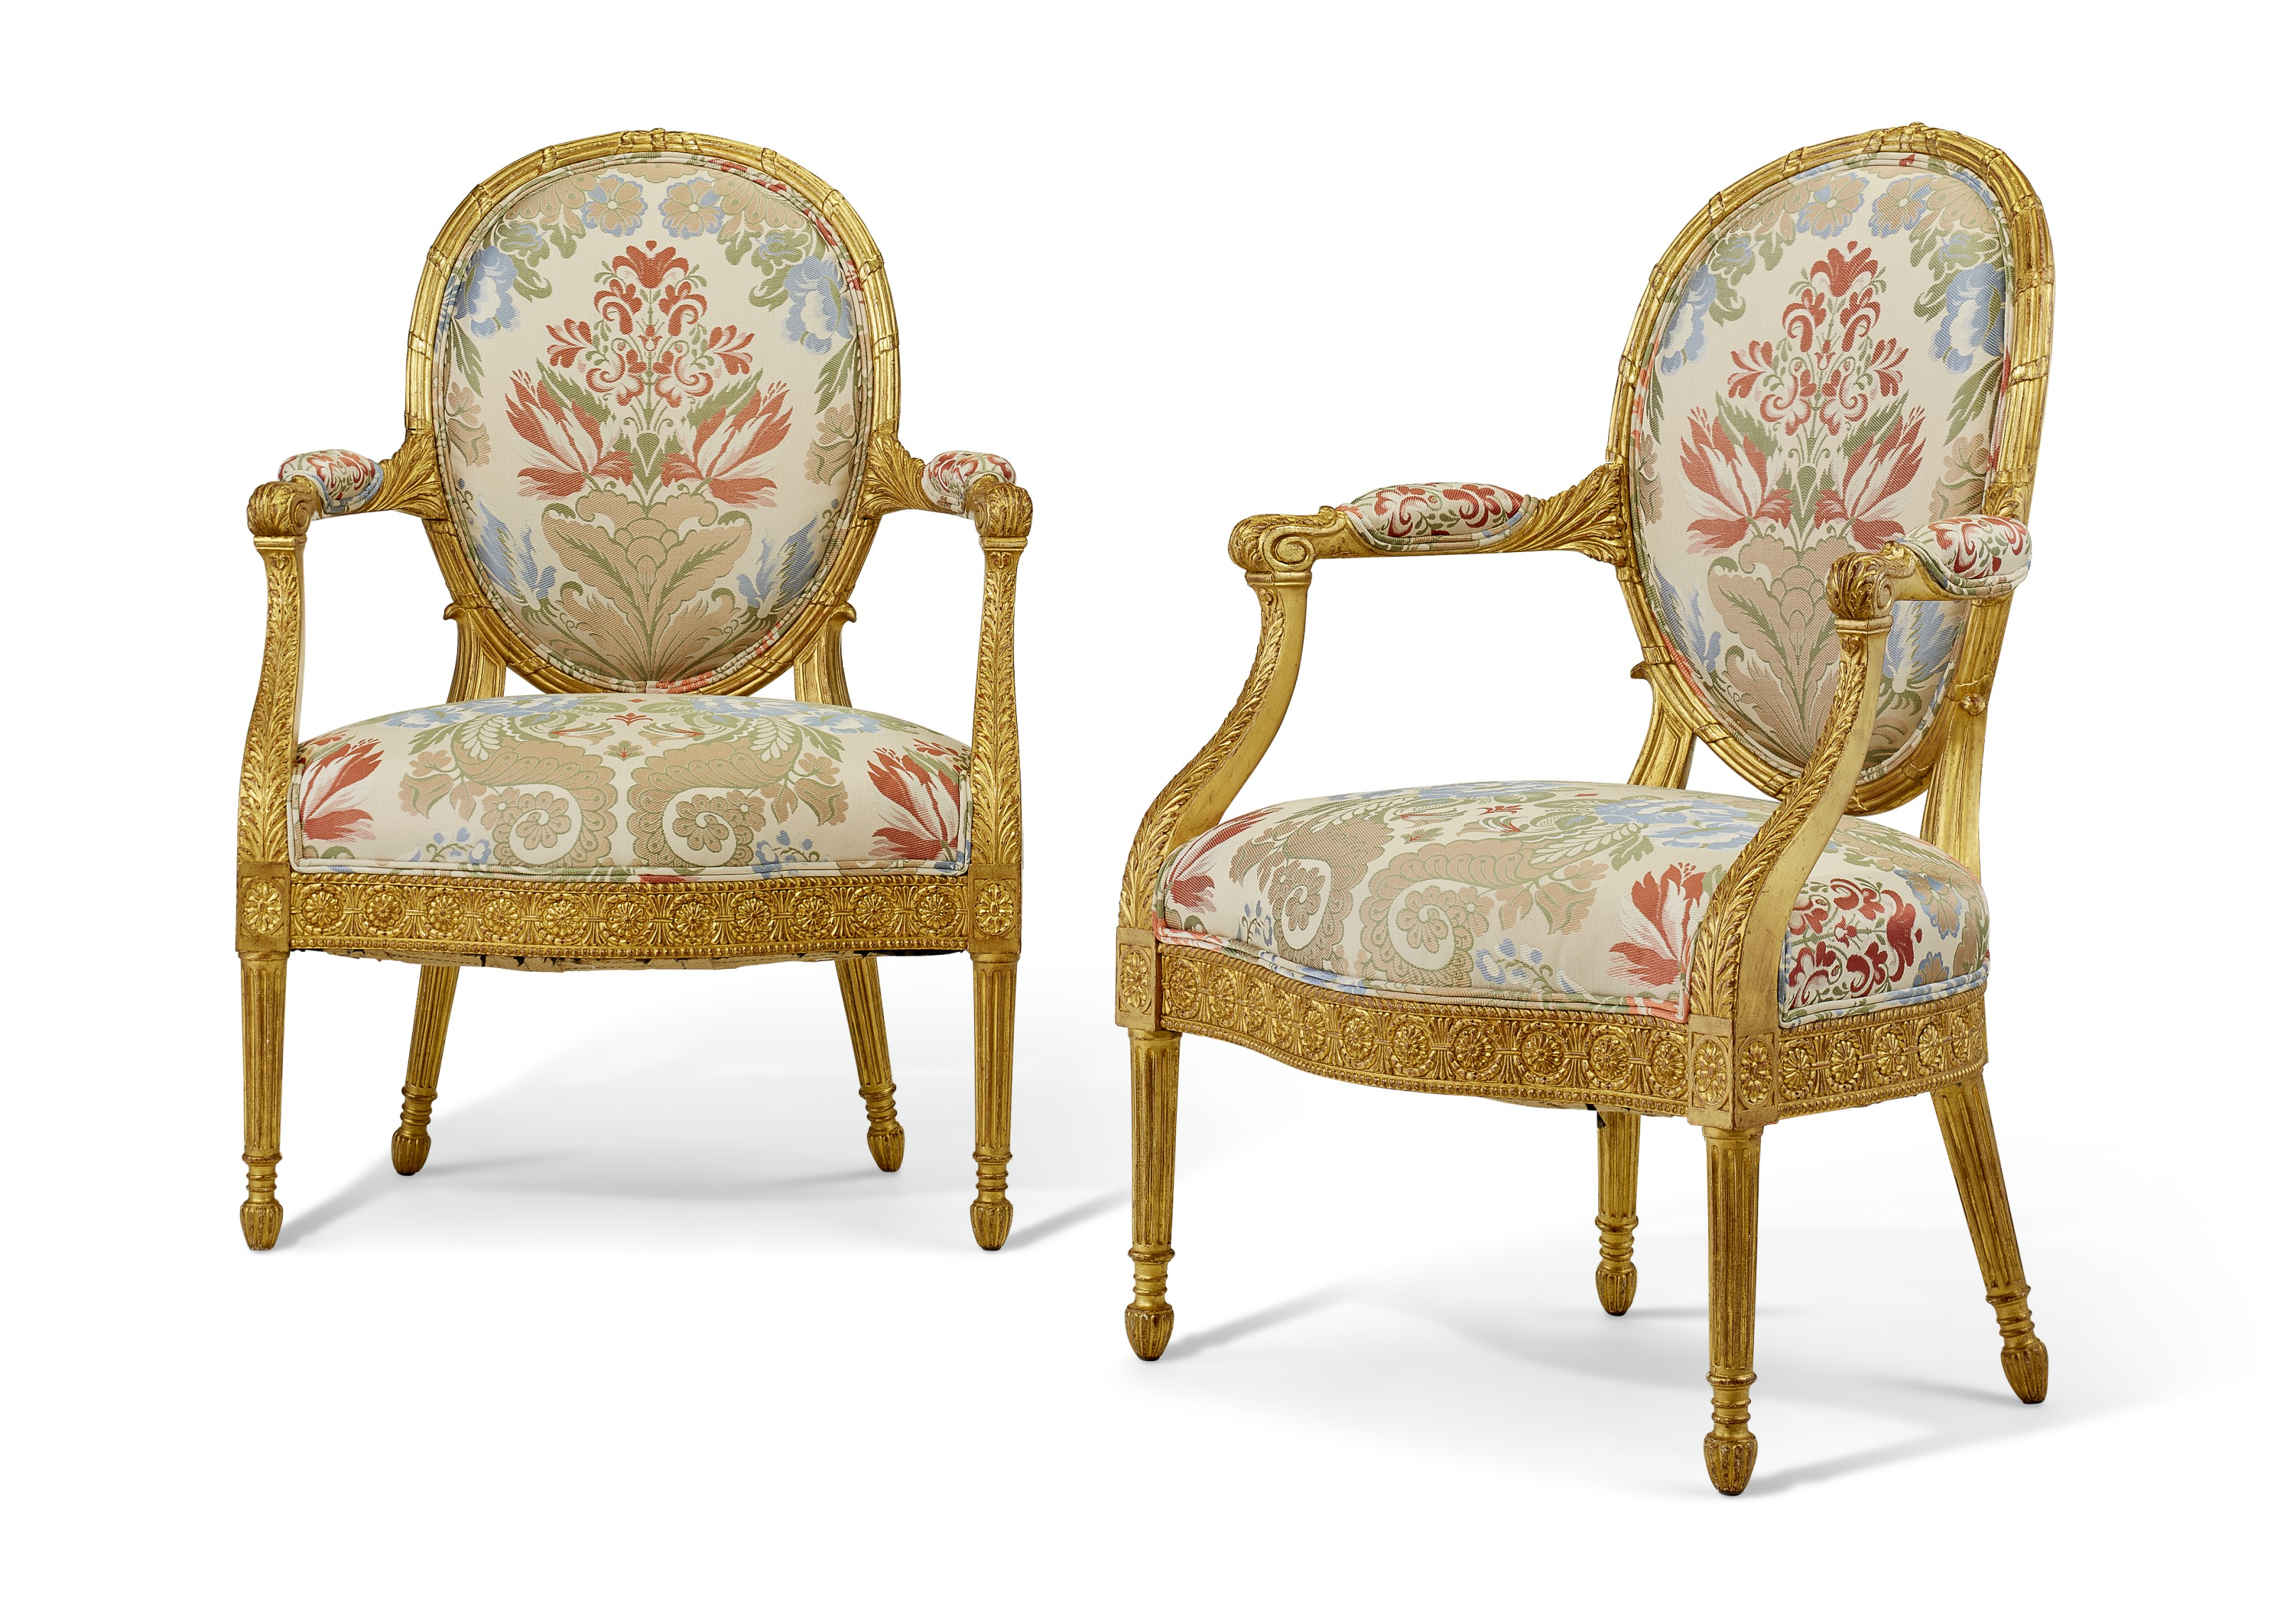 A pair of George III giltwood armchairs, 19th century. 39  in (99  cm) high. Estimate $3,000-5,000. Offered in The Collector English & European Furniture, Ceramics, Silver & Works of Art on 5-19 October 2021 at Christie's Online